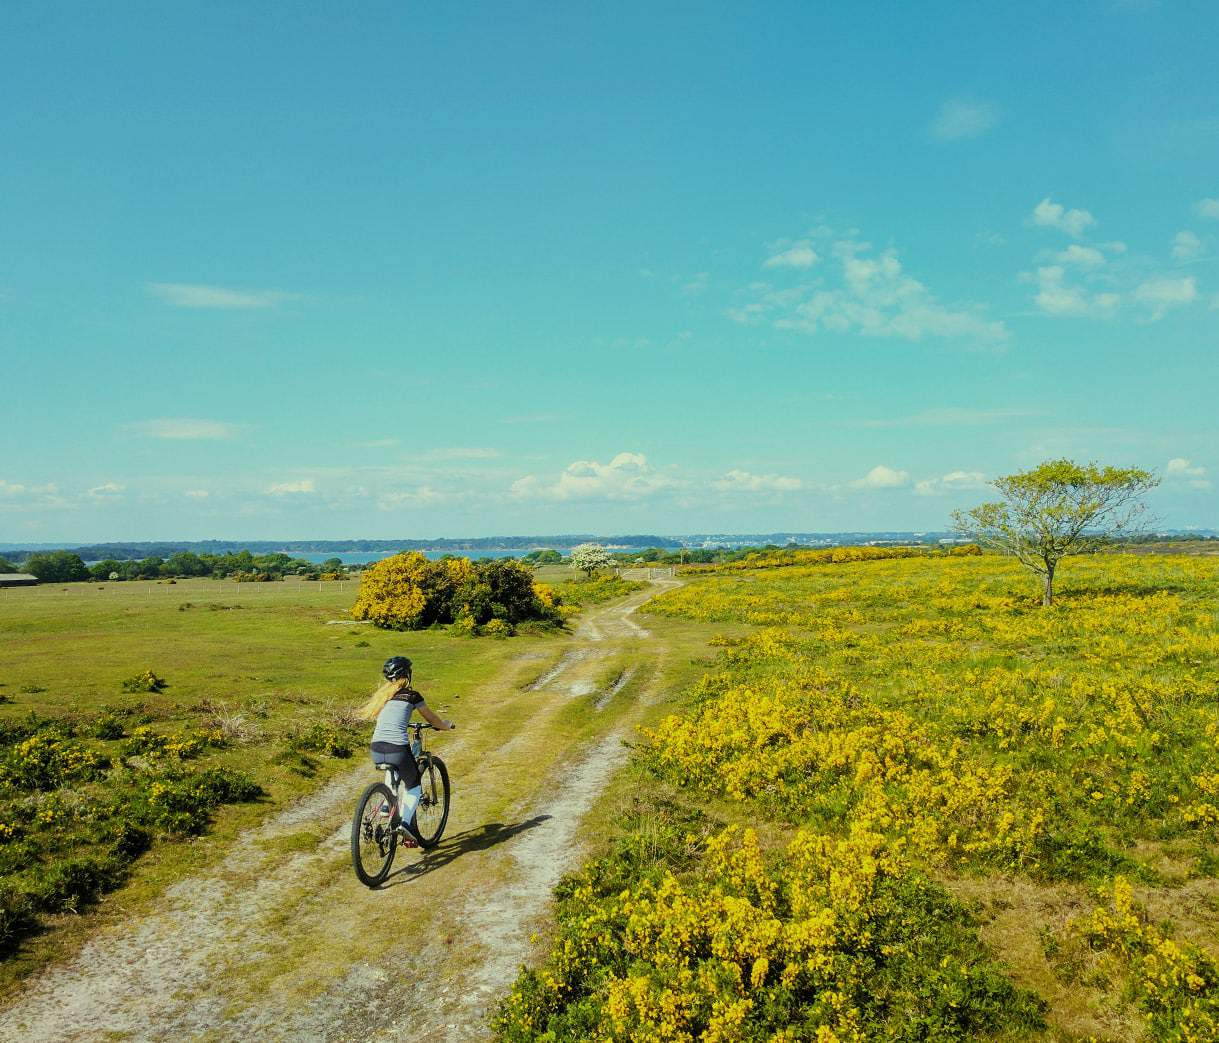 Purbeck is cycling country, with miles of safe, traffic free riding through jaw dropping scenery. Burnbake itself has 20 acres of woodland, great for kids to pedal around and explore.